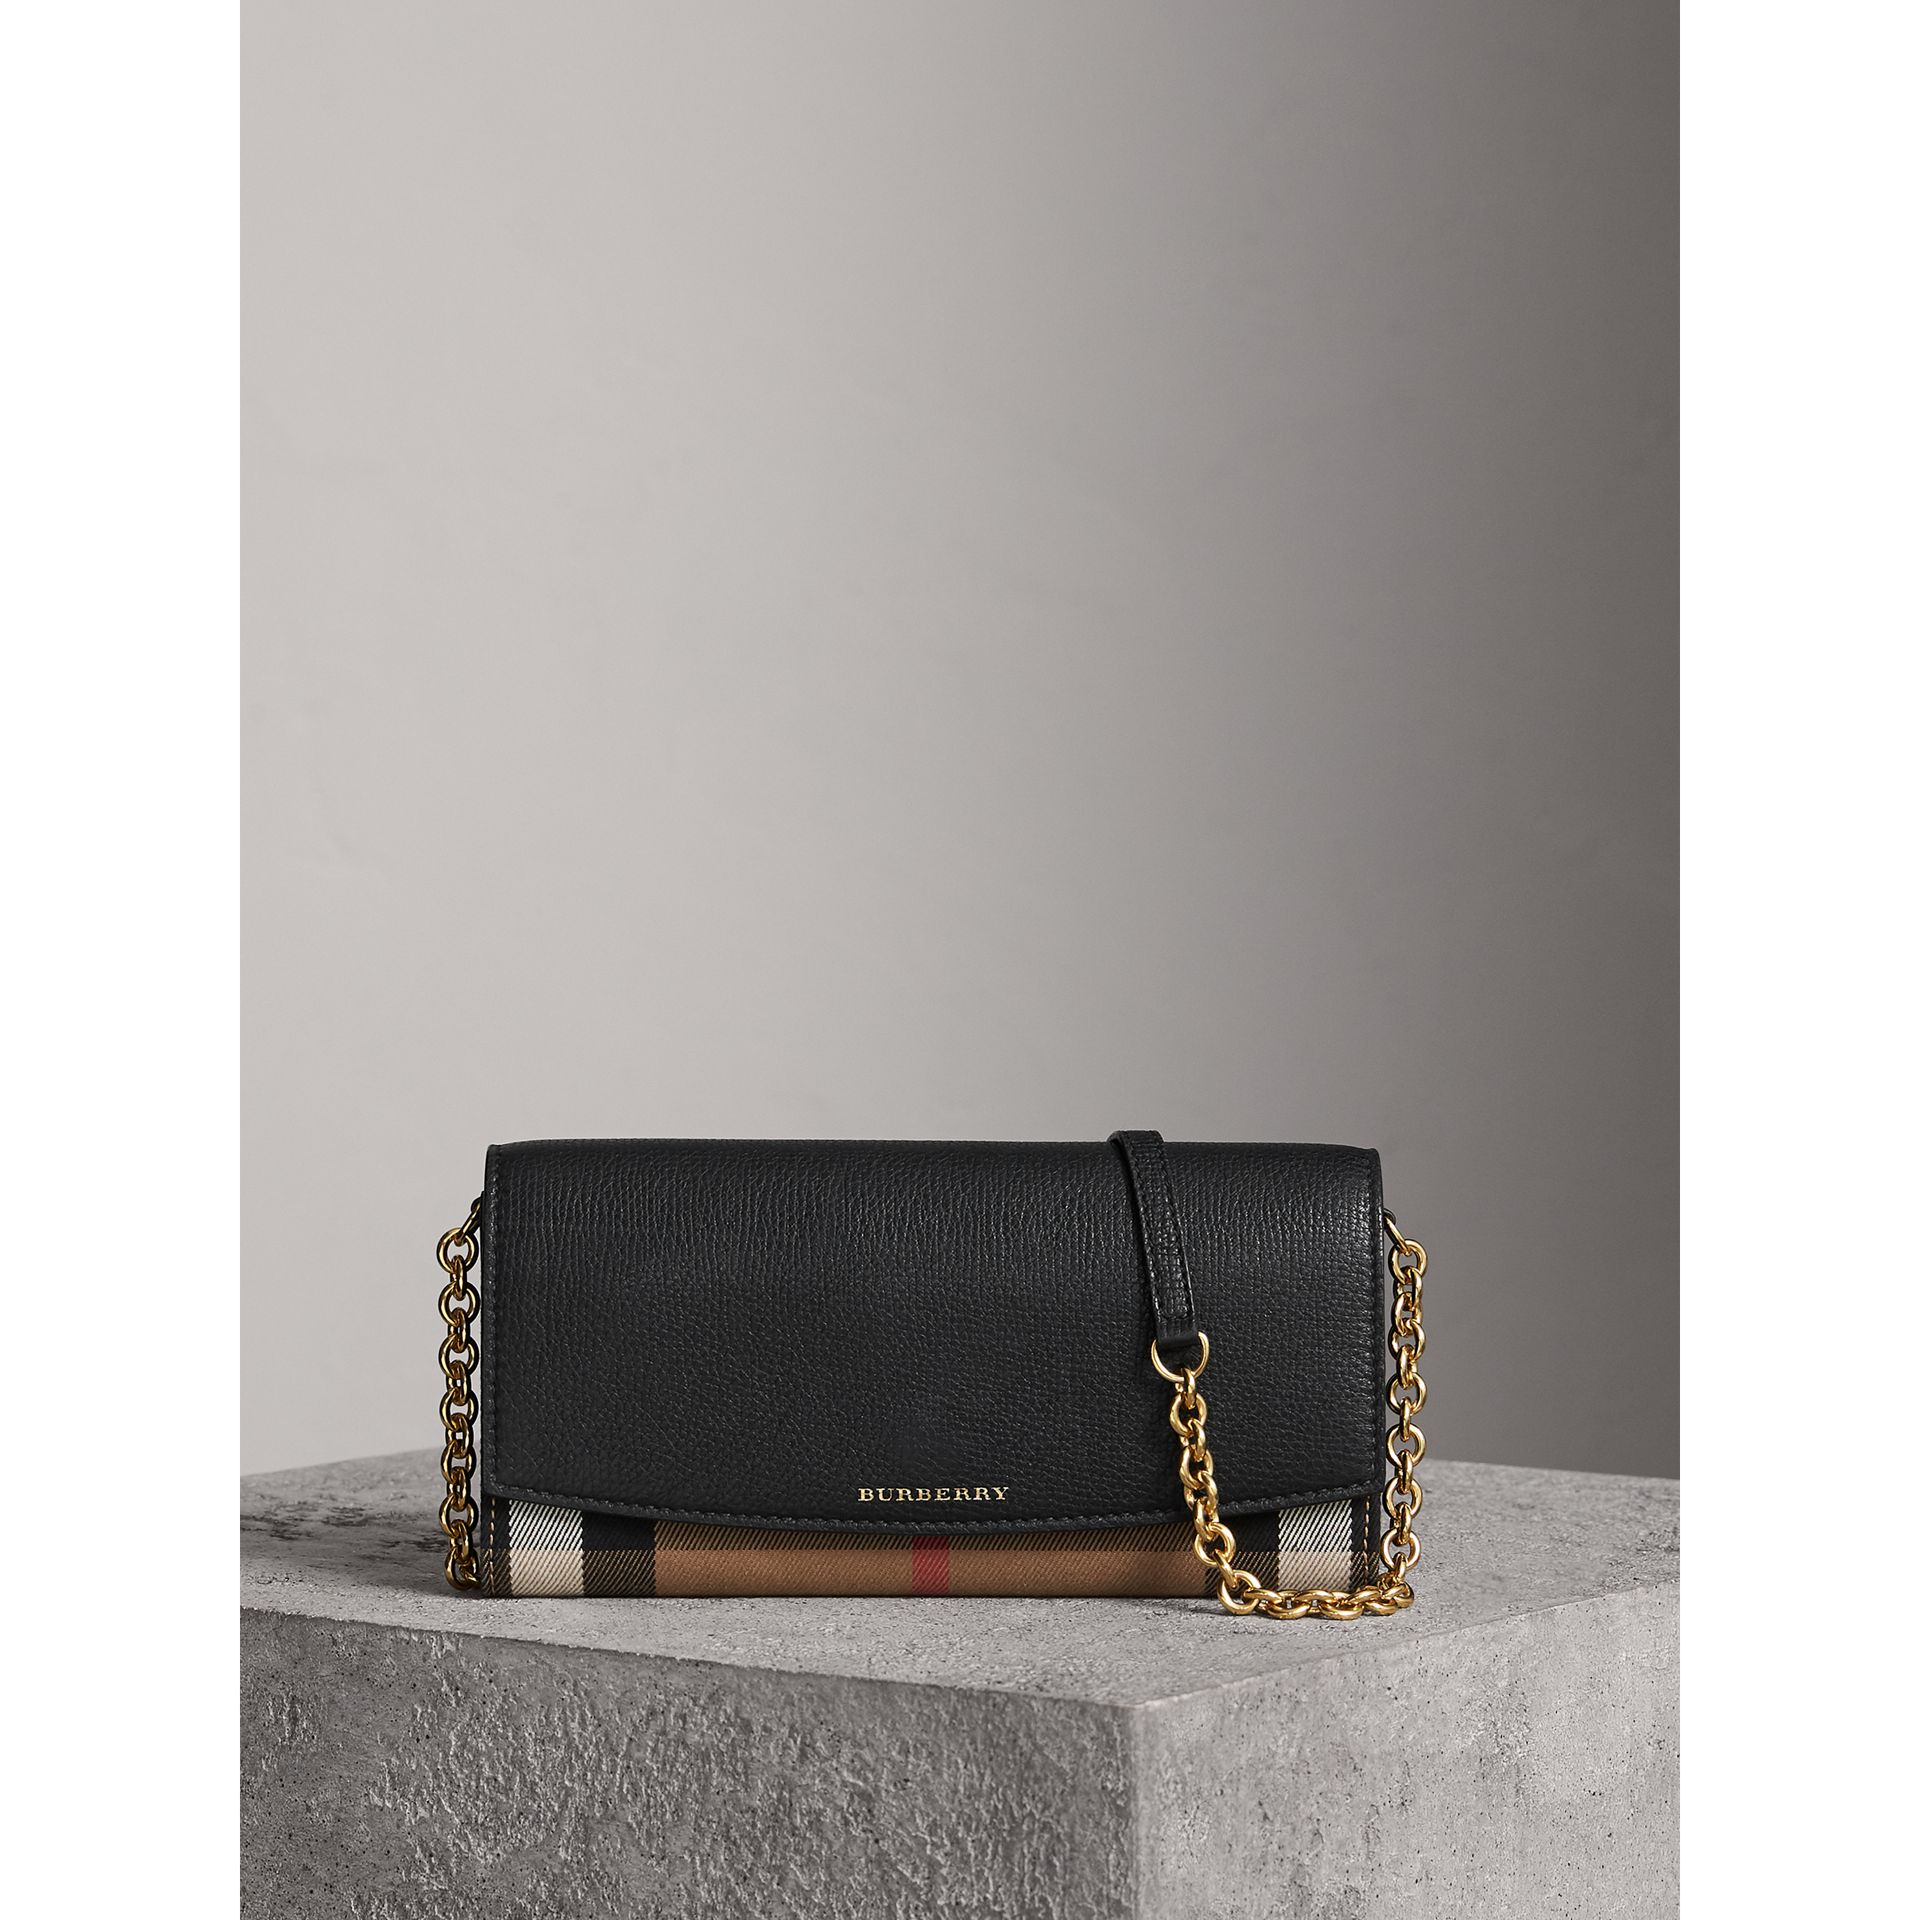 House Check and Leather Wallet with Chain in Black - Women | Burberry Hong Kong - gallery image 7